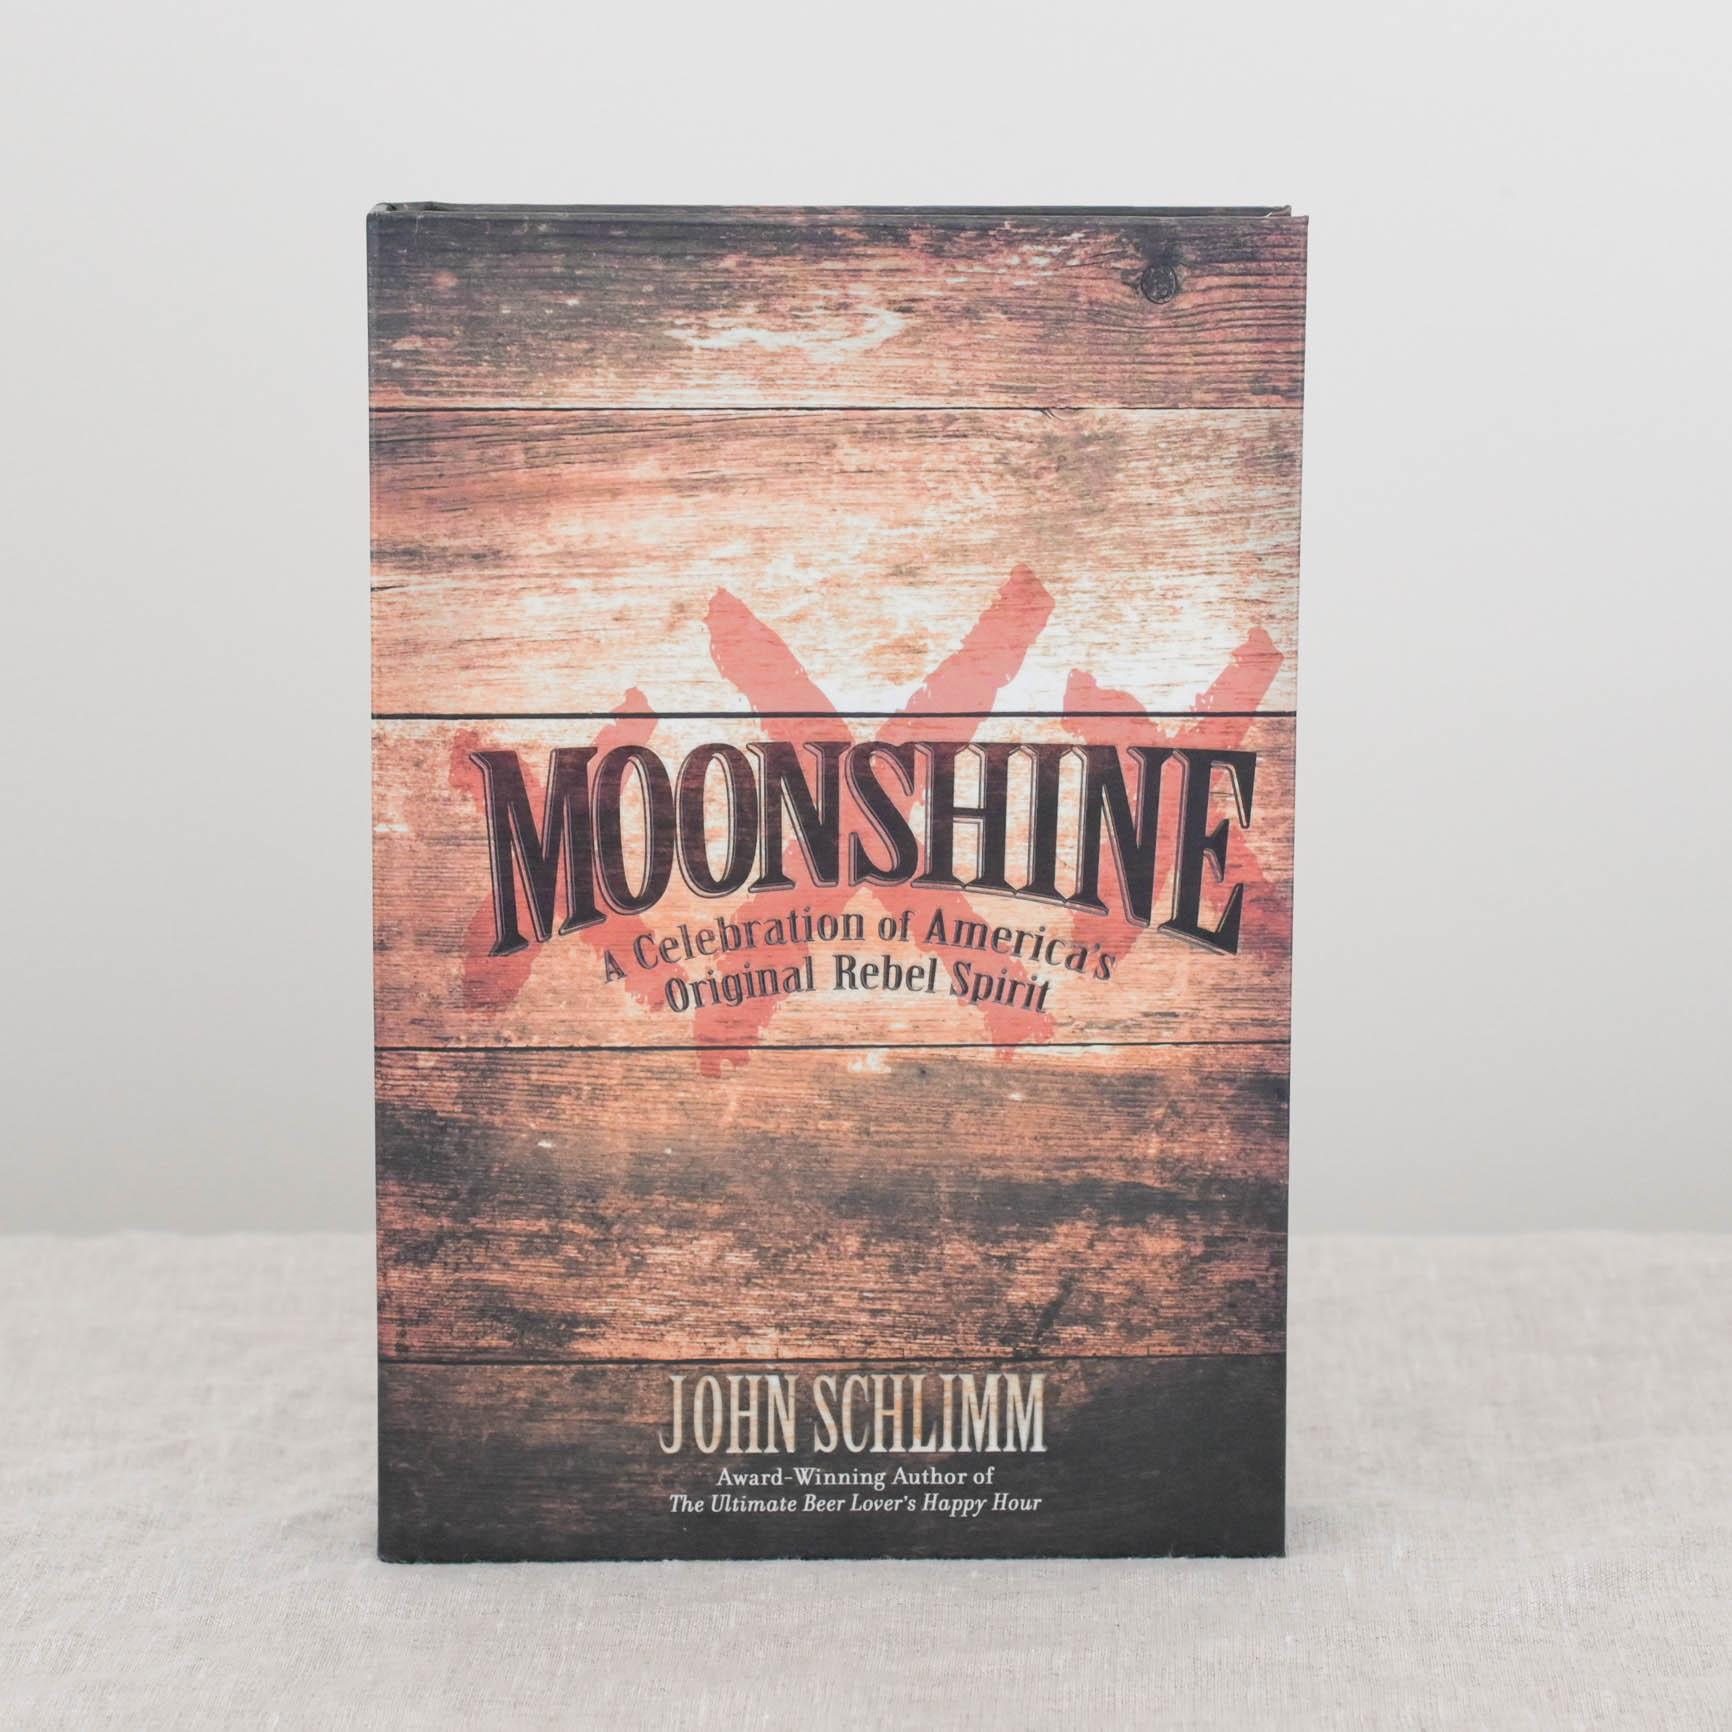 Moonshine - A celebration of America's Original Rebel Spirit